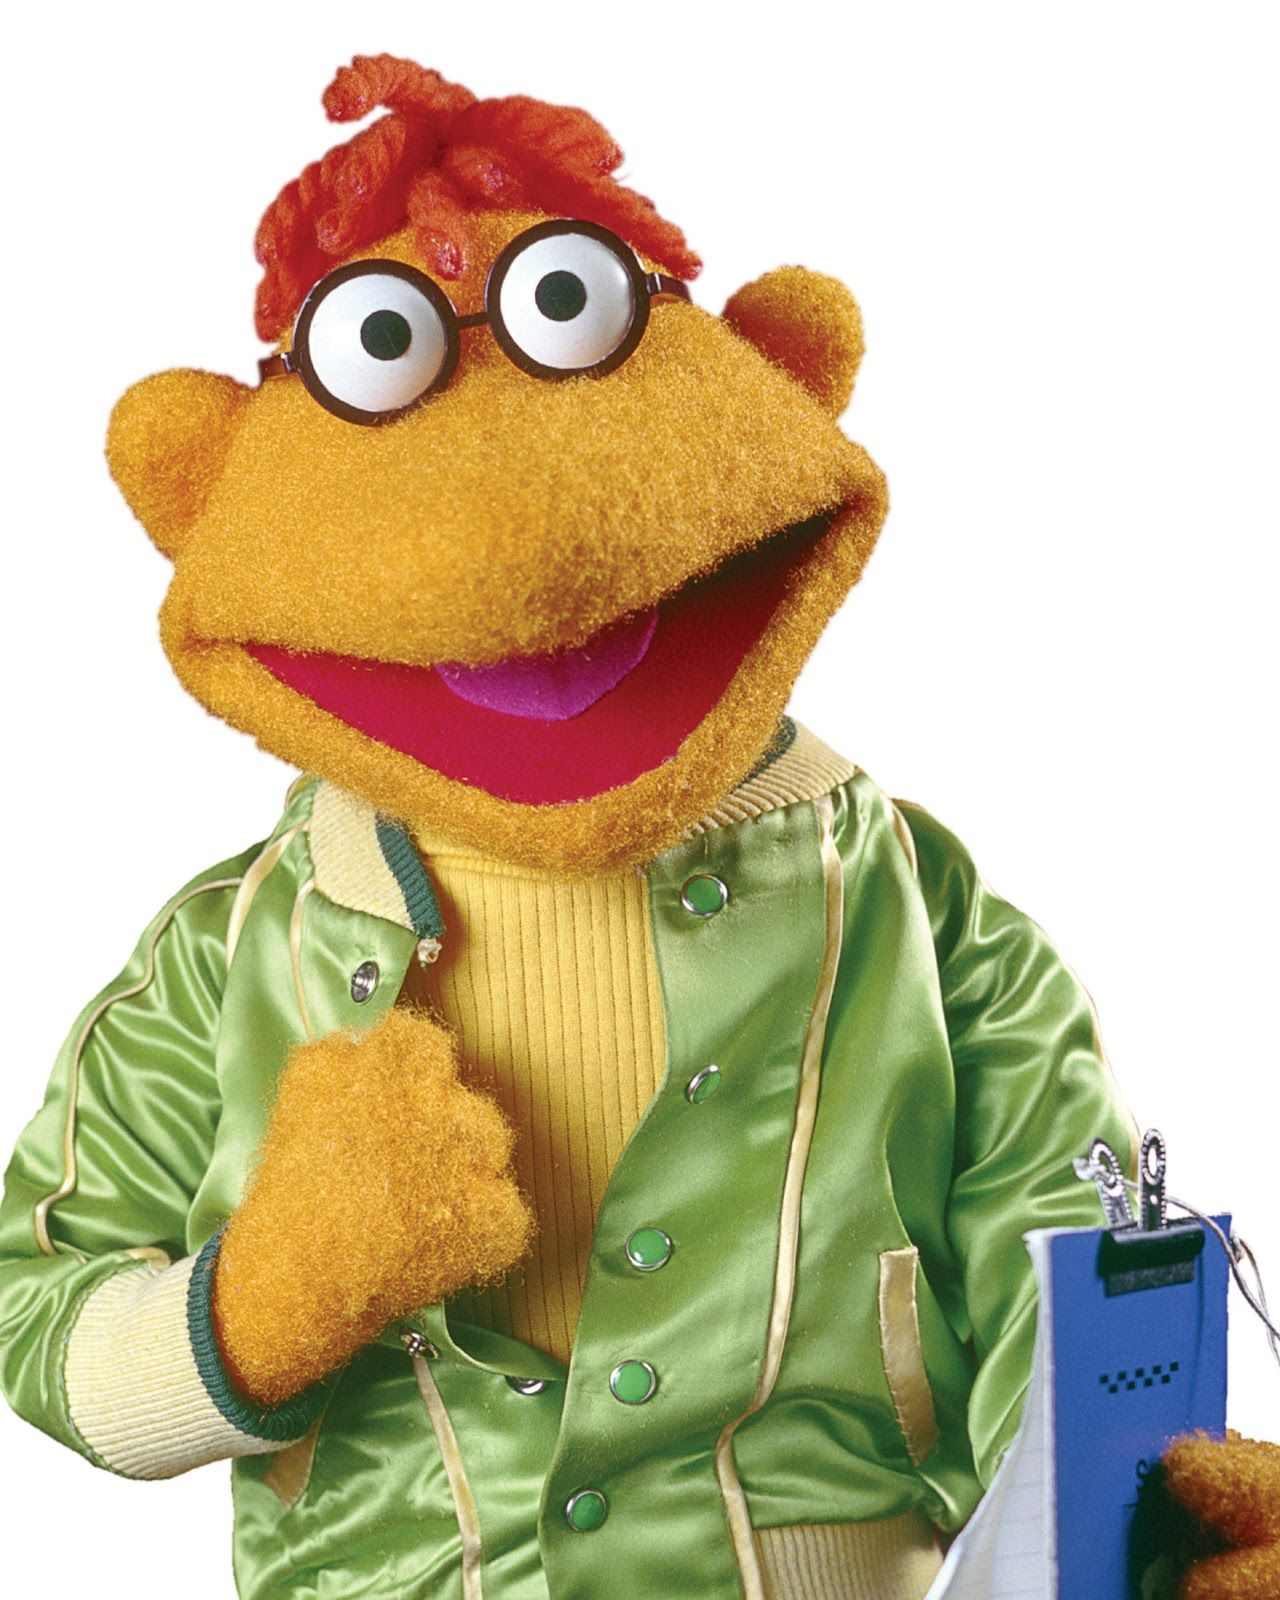 Muppetology 101 Recasting Of Muppet Show Characters Pt 3 The Muppets Characters Muppets The Muppet Show